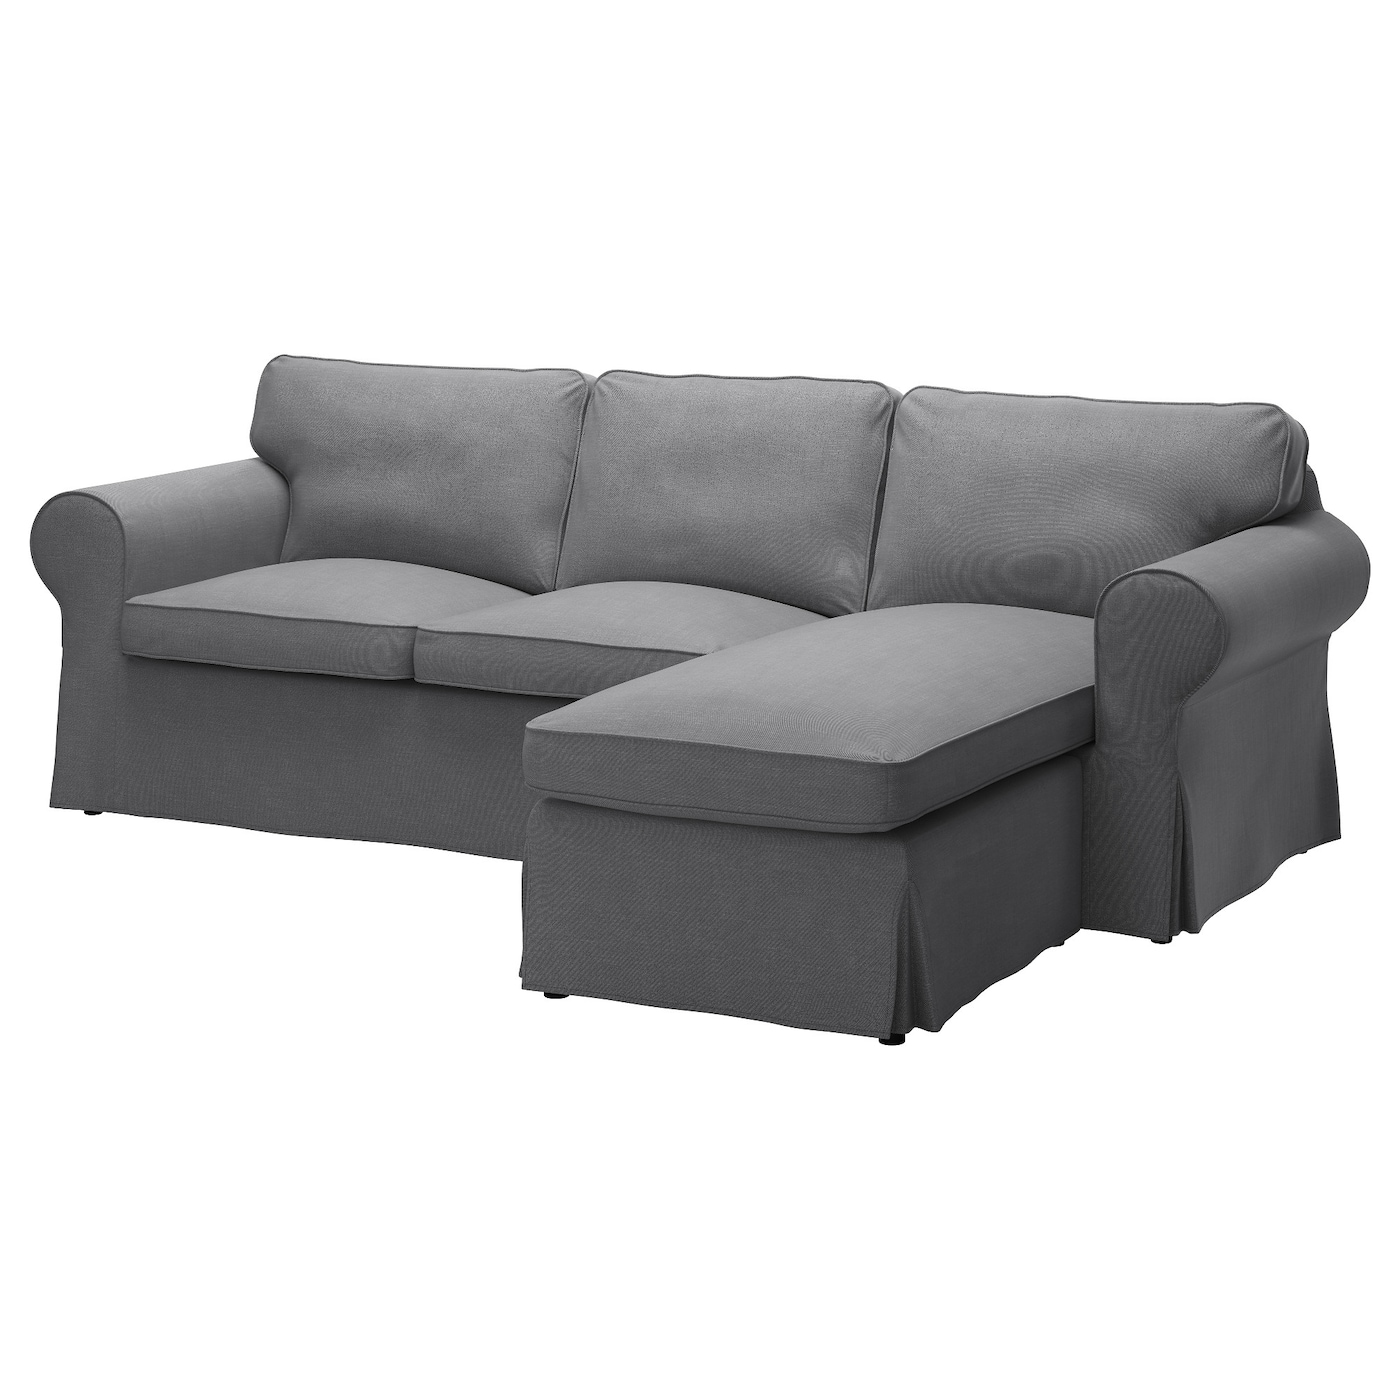 Ikea Rp 3 Seat Sofa 10 Year Guarantee Read About The Terms In